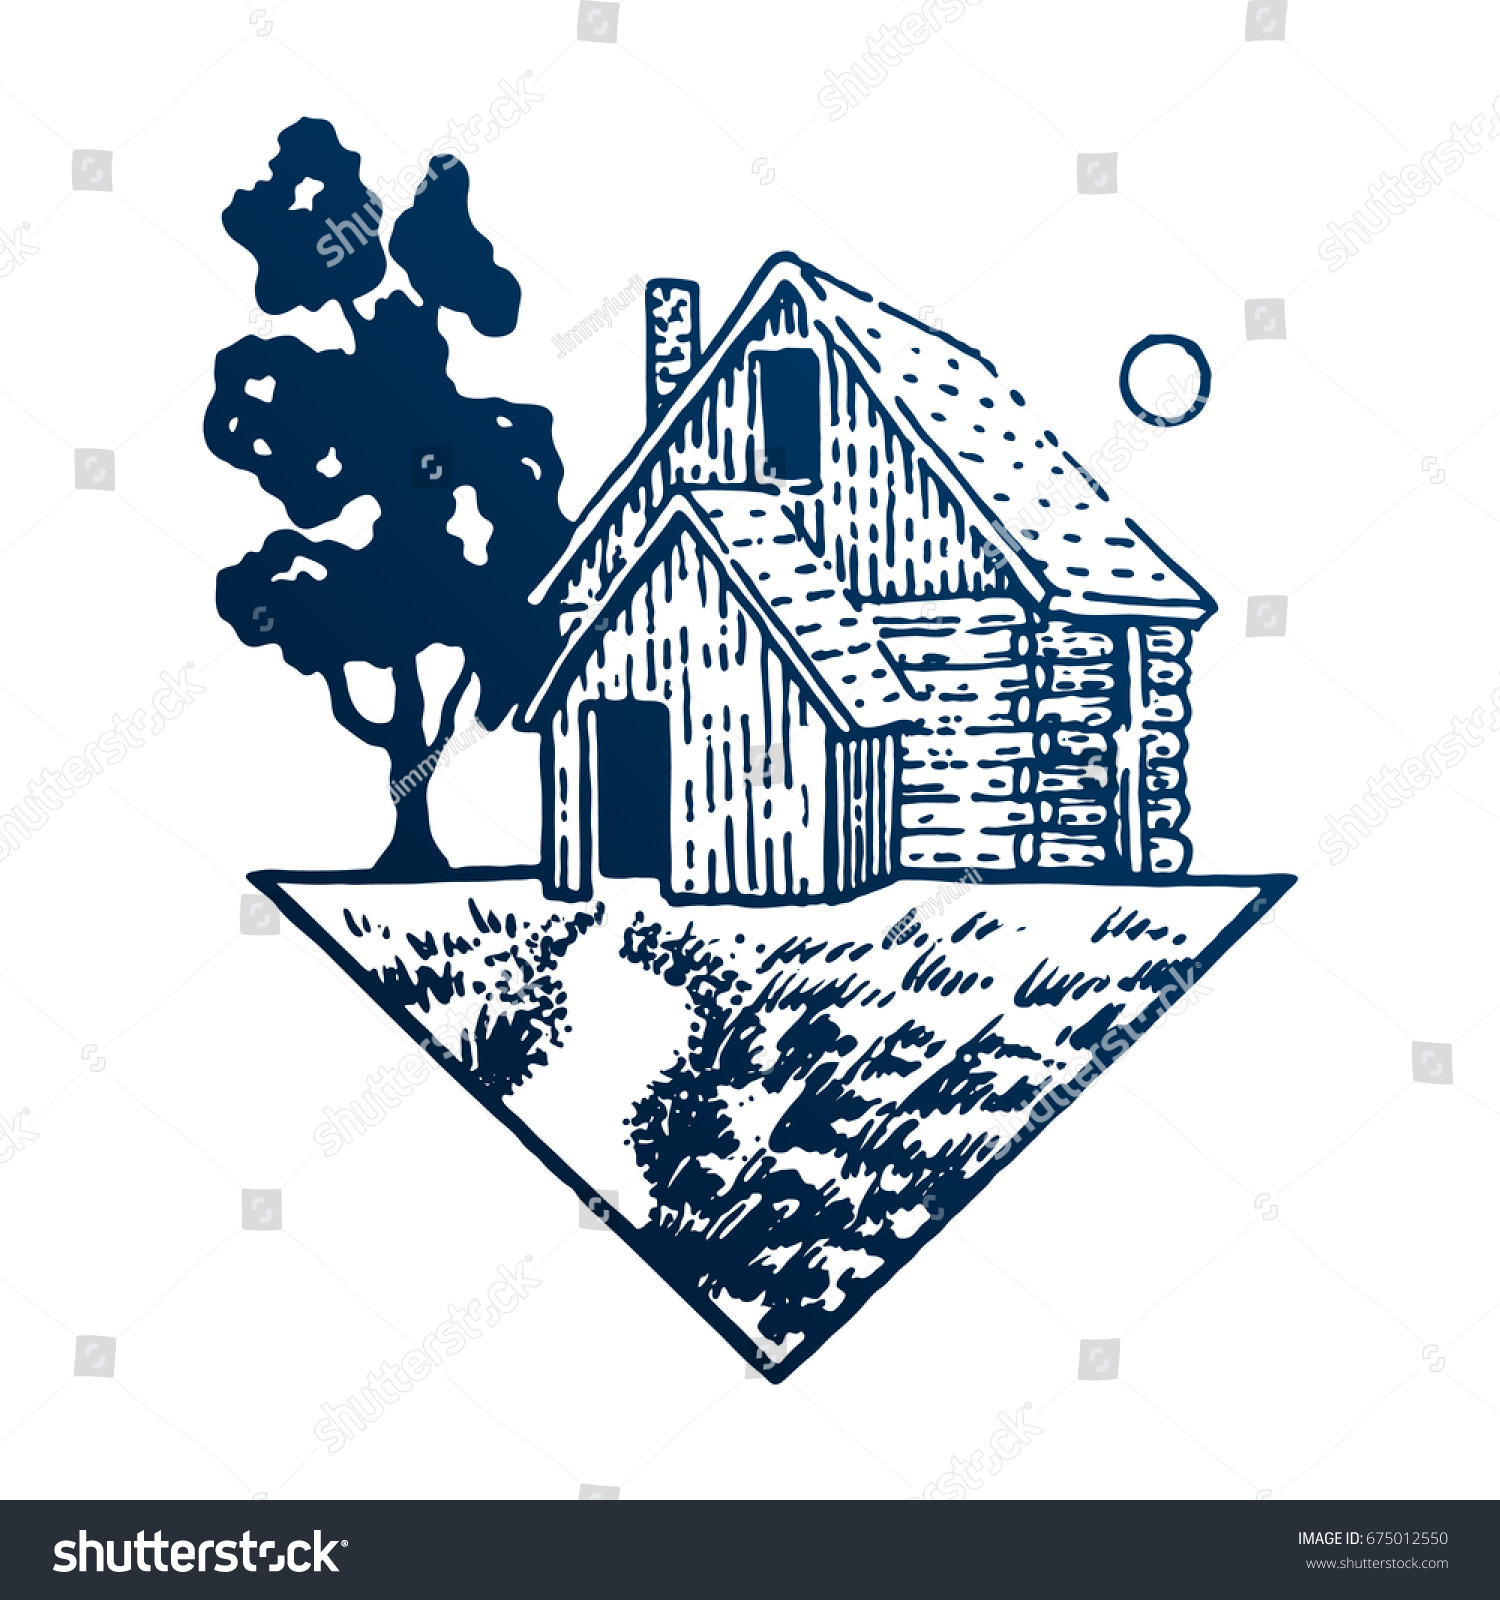 Wooden house tree sun triangle travel stock vector 675012550 triangle travel symbol tourism hand drawn engraved biocorpaavc Images